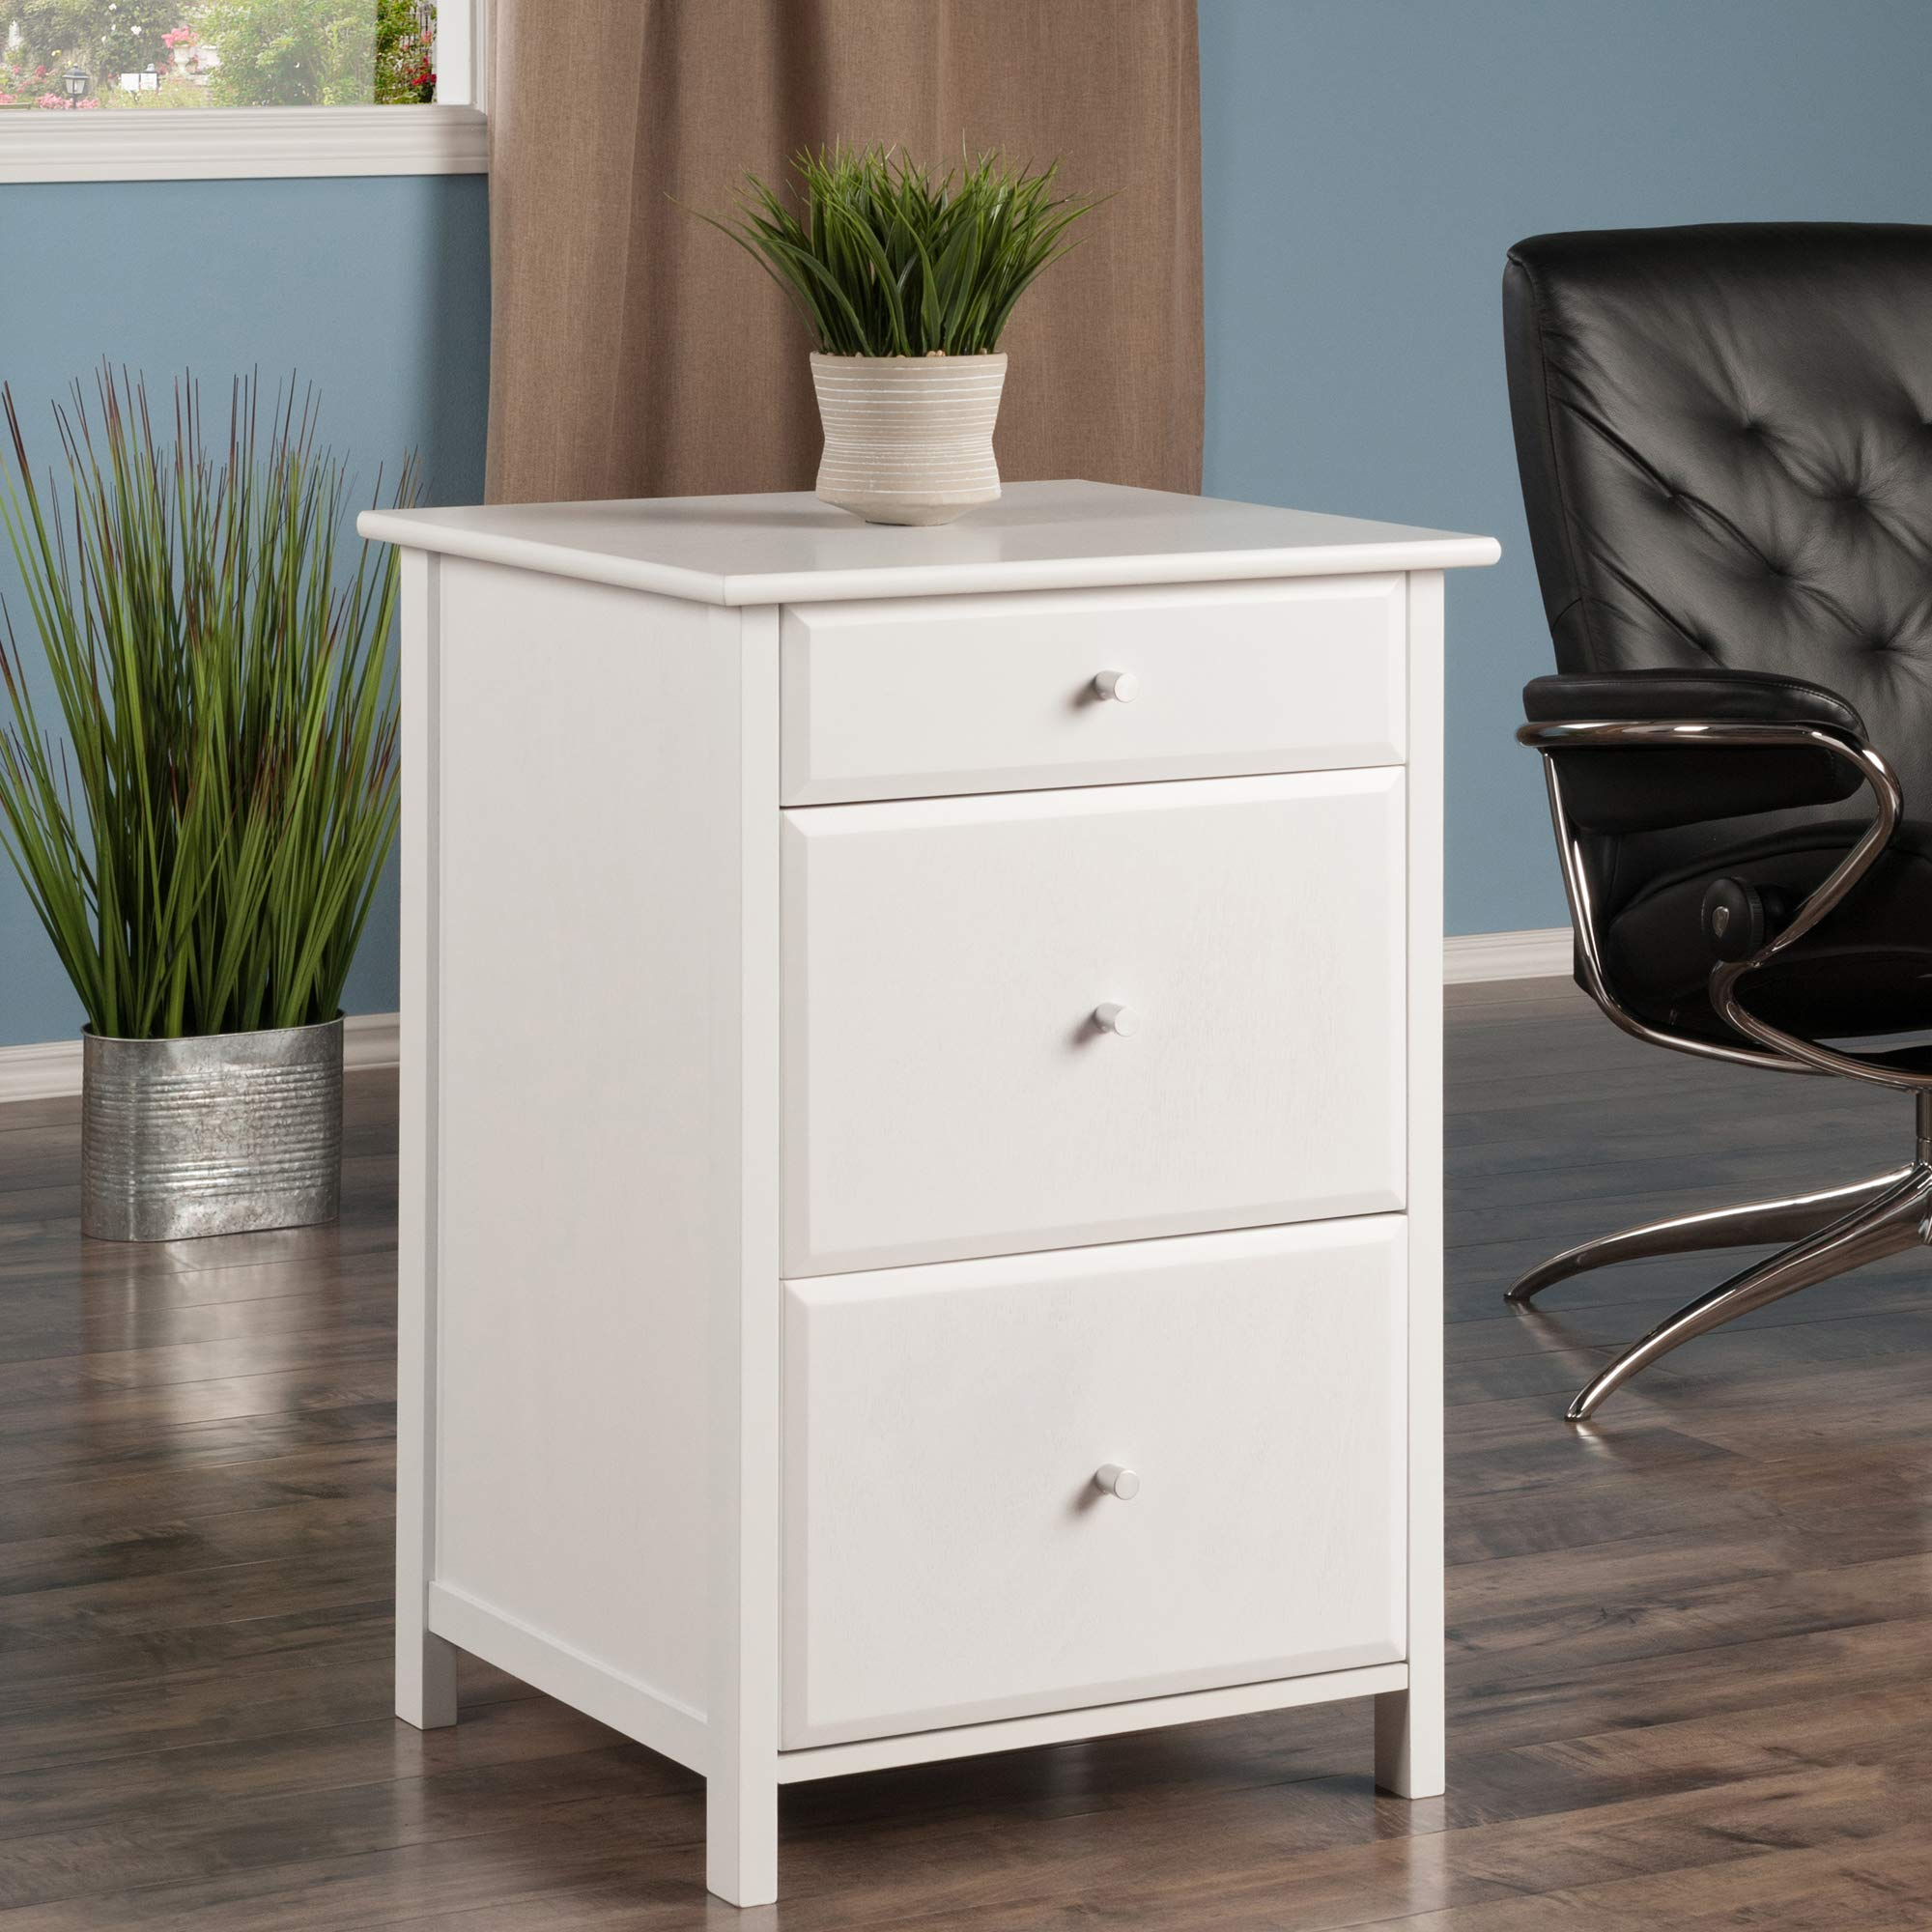 Winsome Wood 10321 Delta File Cabinet White Home Office, by Winsome Wood (Image #2)